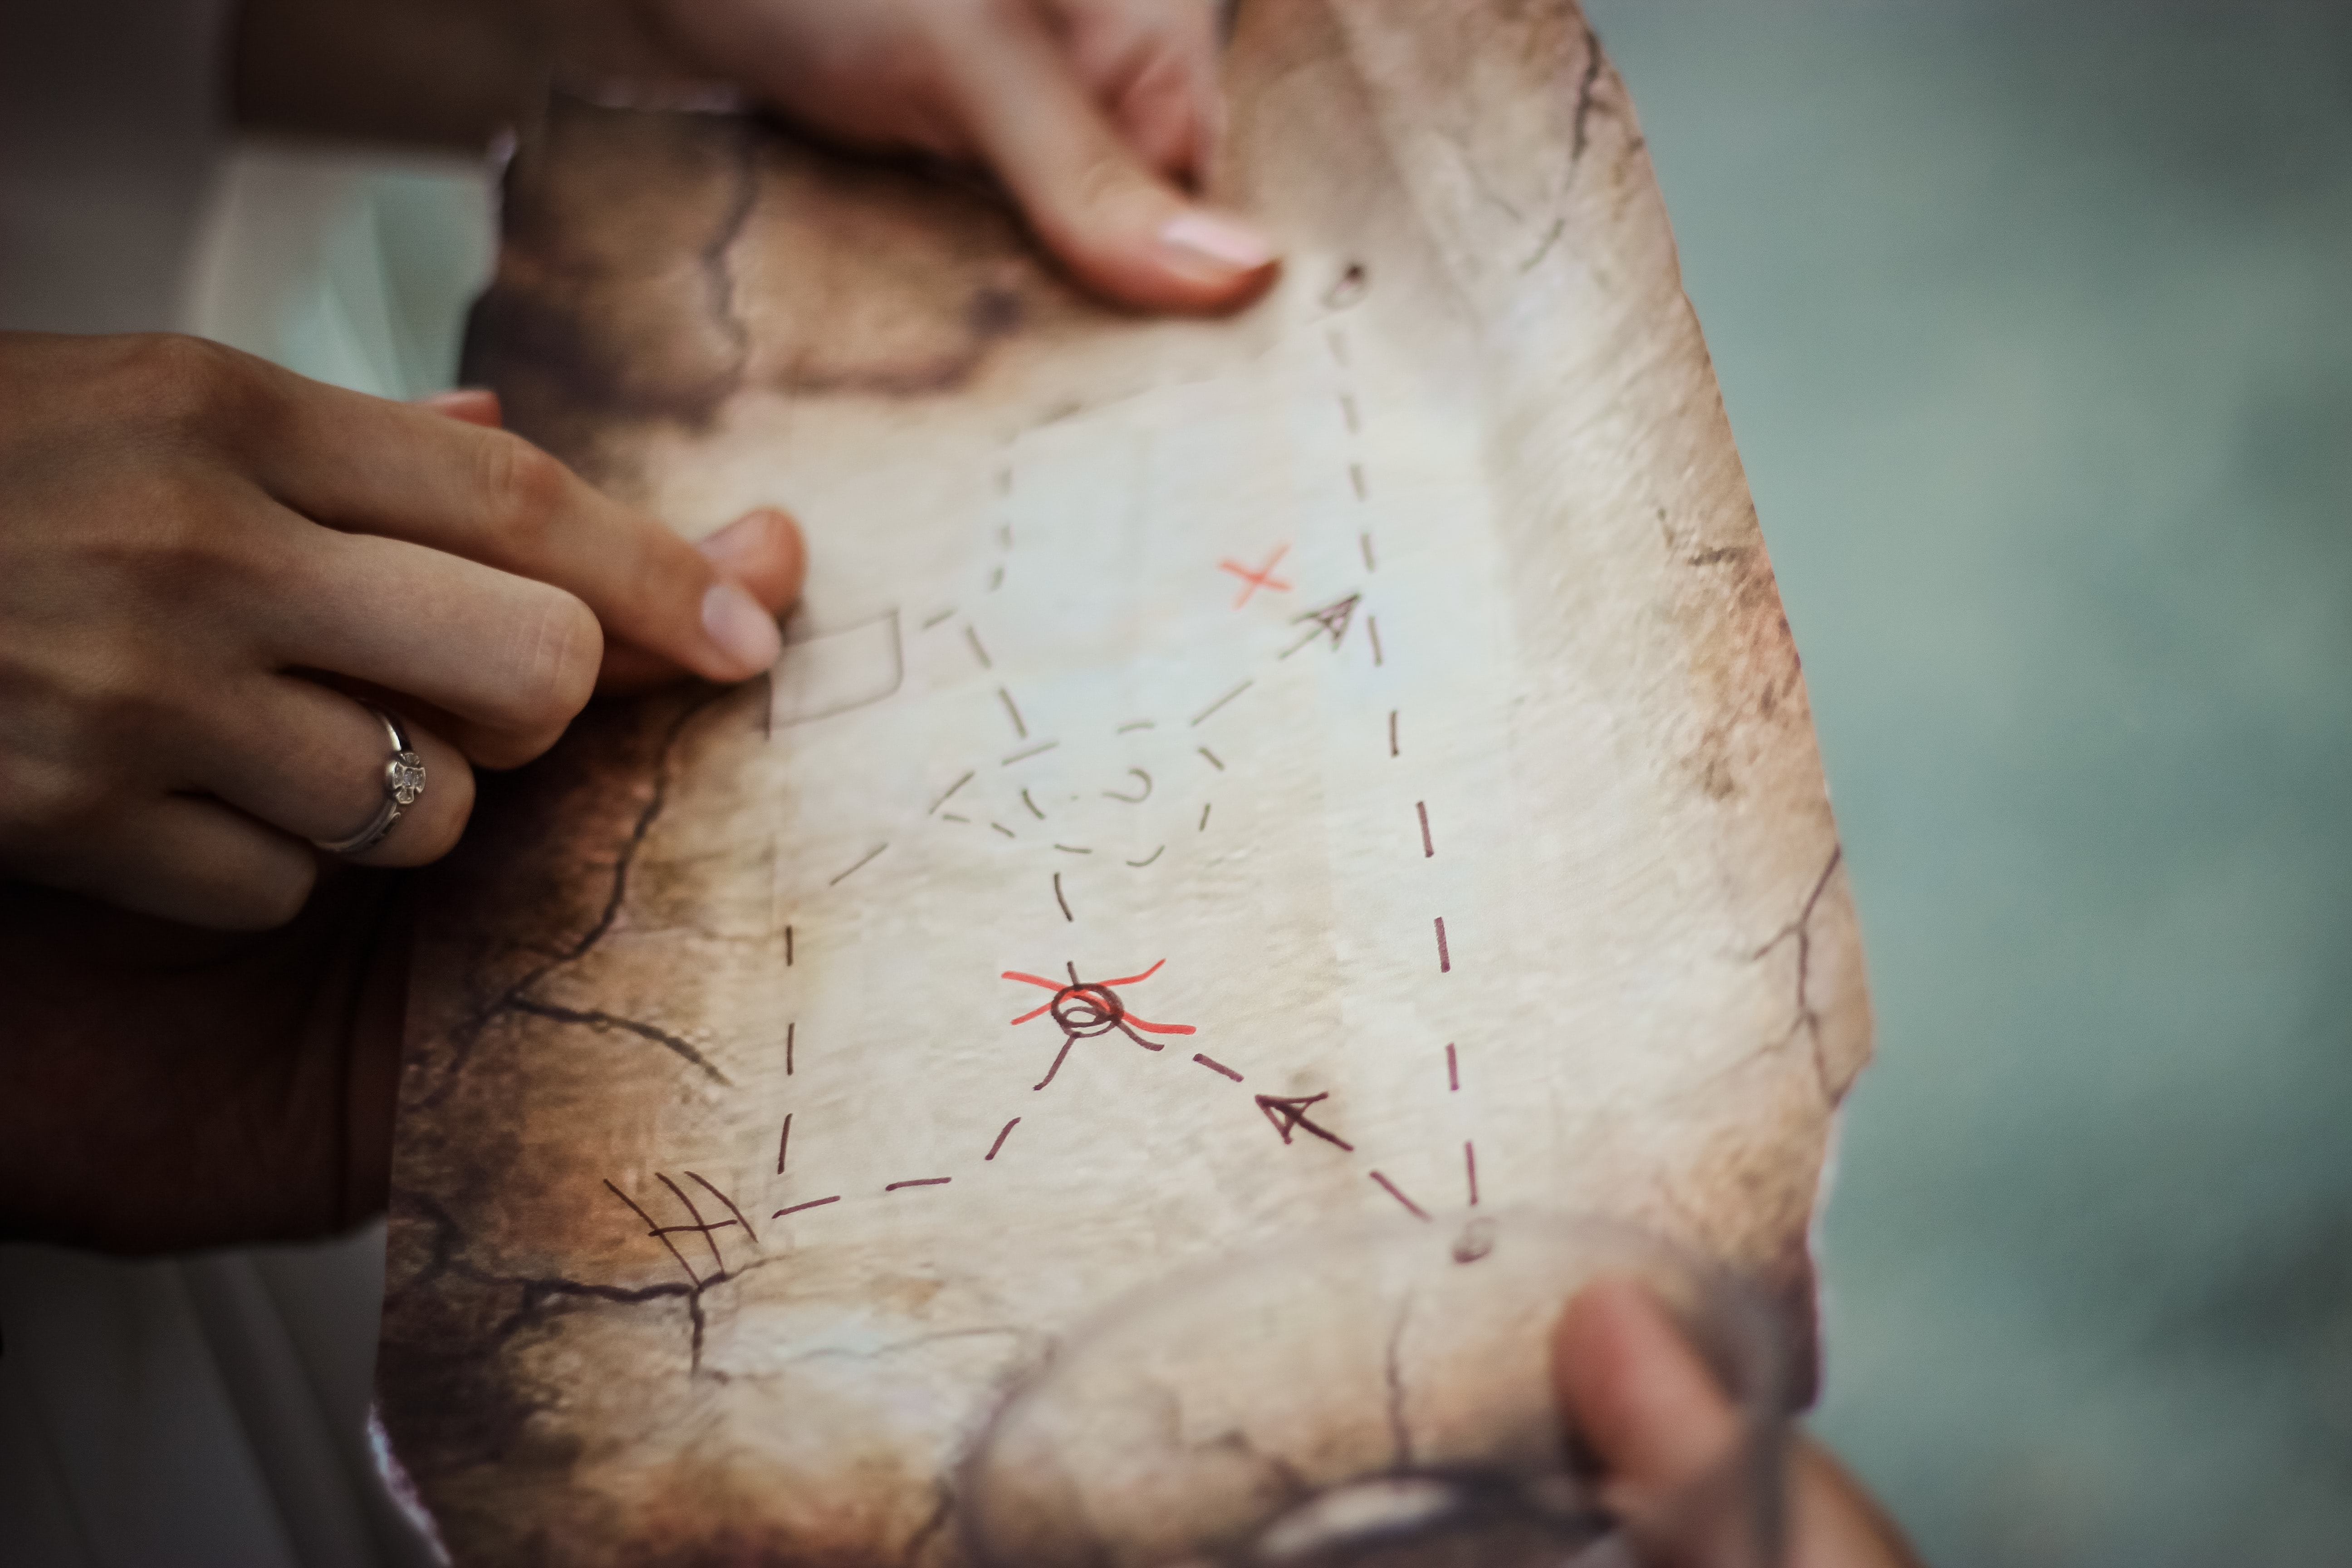 Two people holding up an old map with directions and X marks drawn with a marker